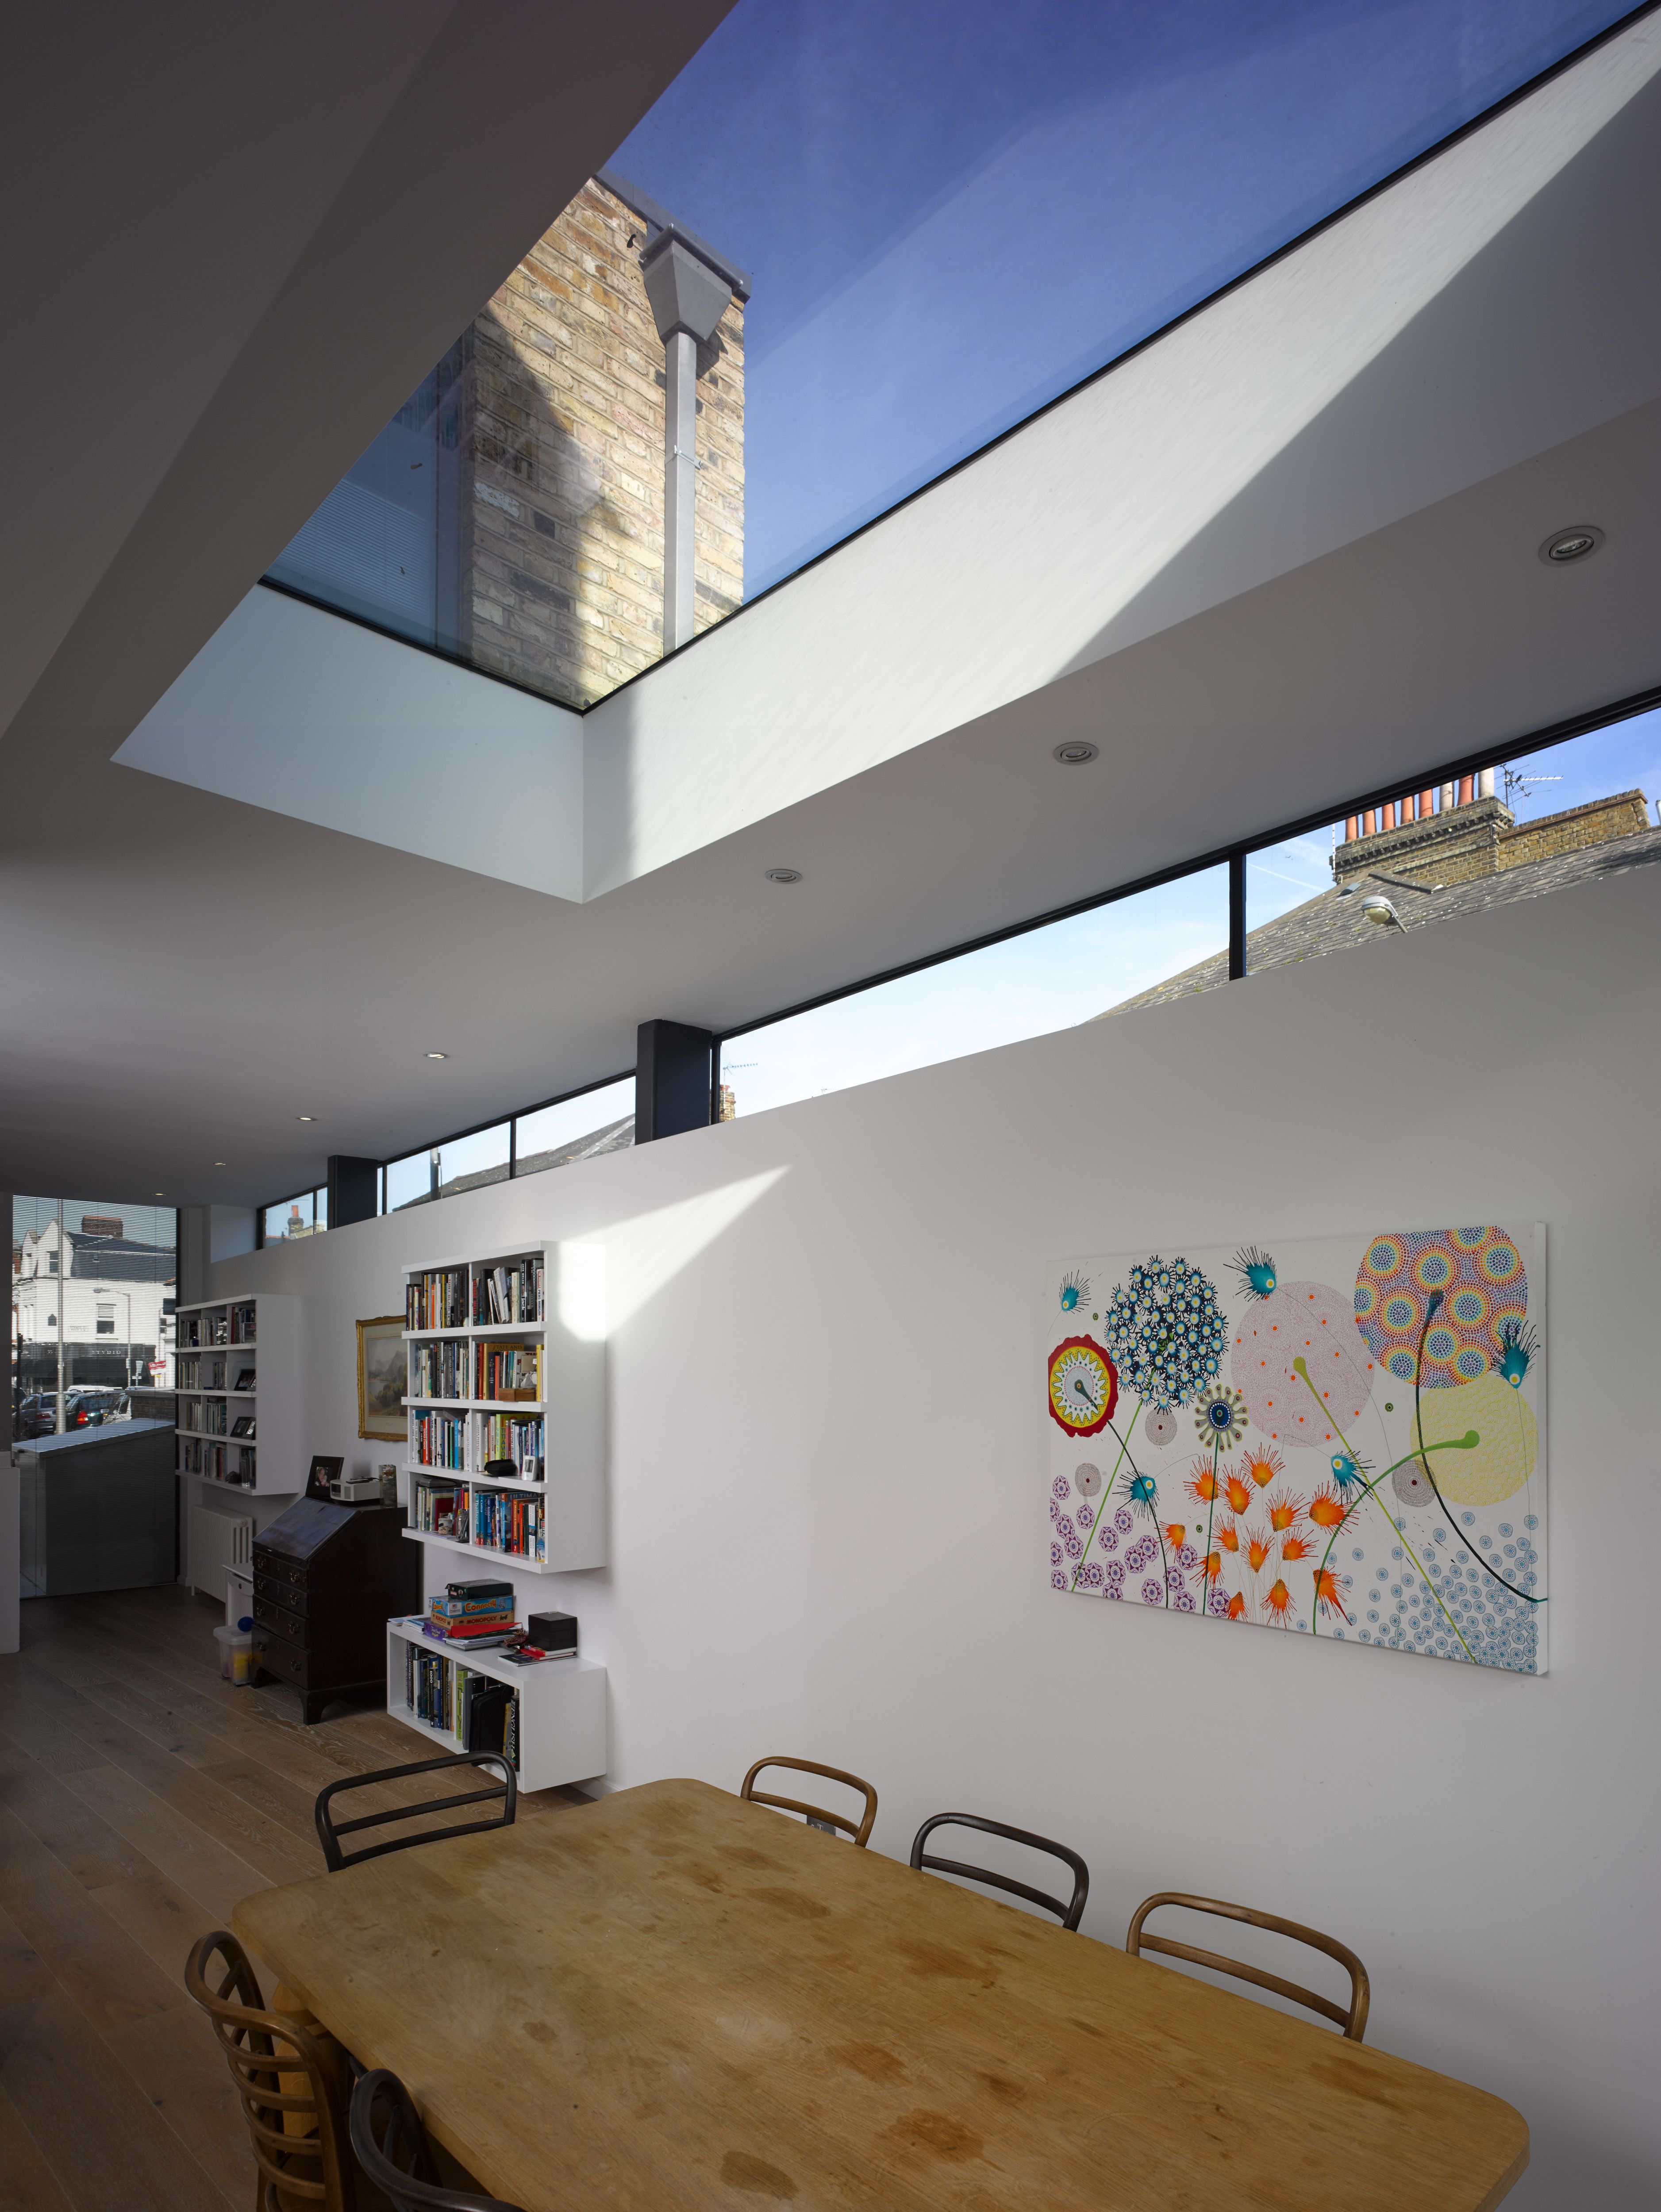 Alternative To Flat Roof Of Structural Glass Is A Huge Skylight Like